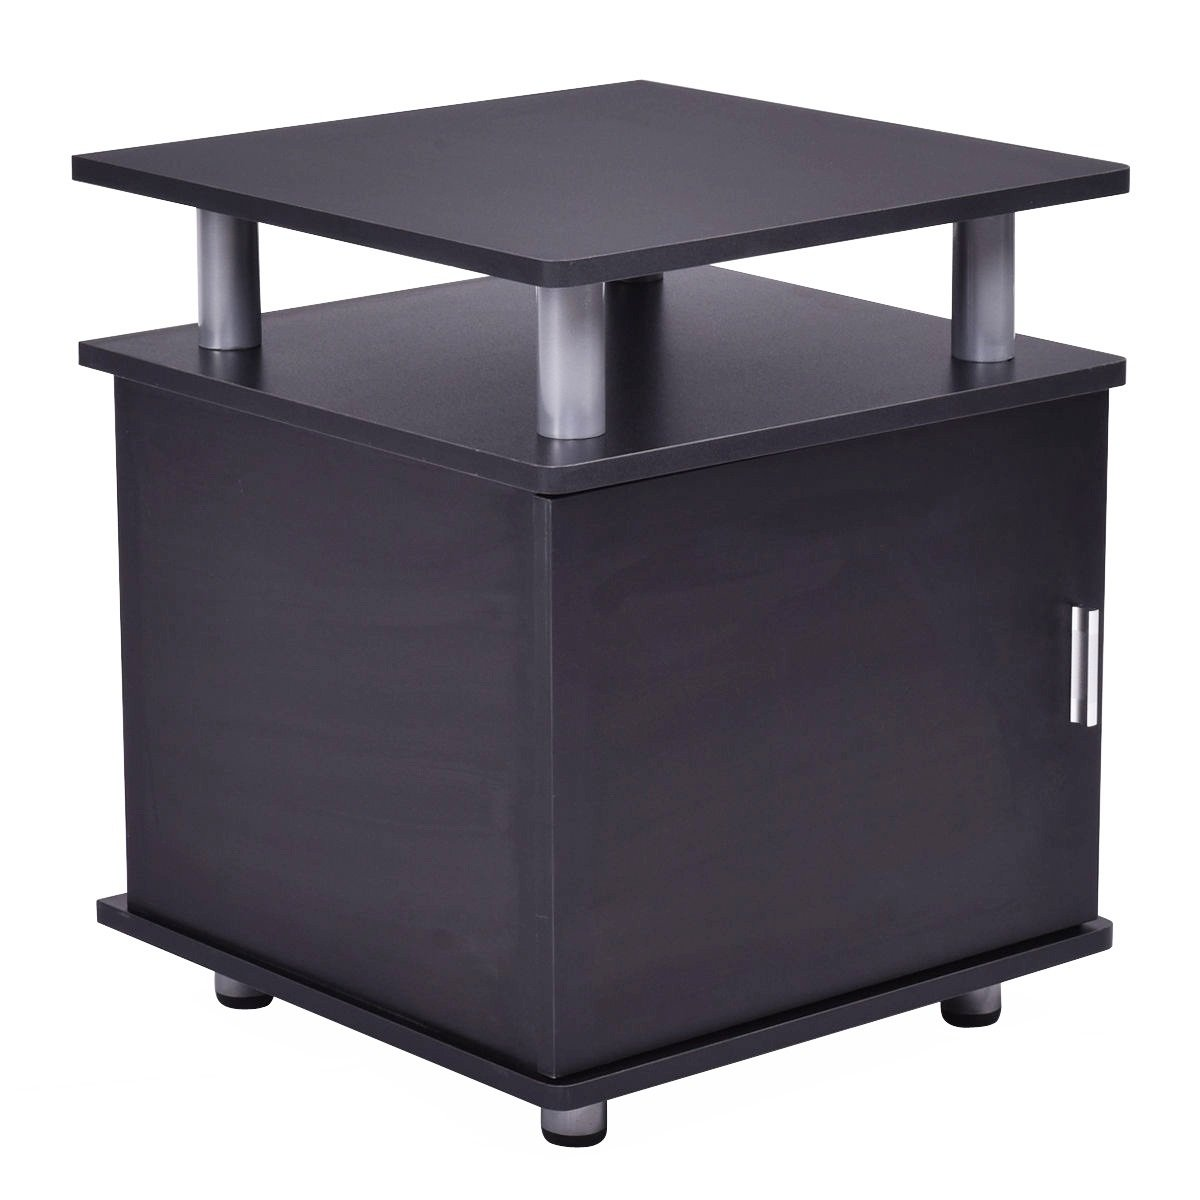 Large Storage Couch Side Cabinet End Table for Living Room